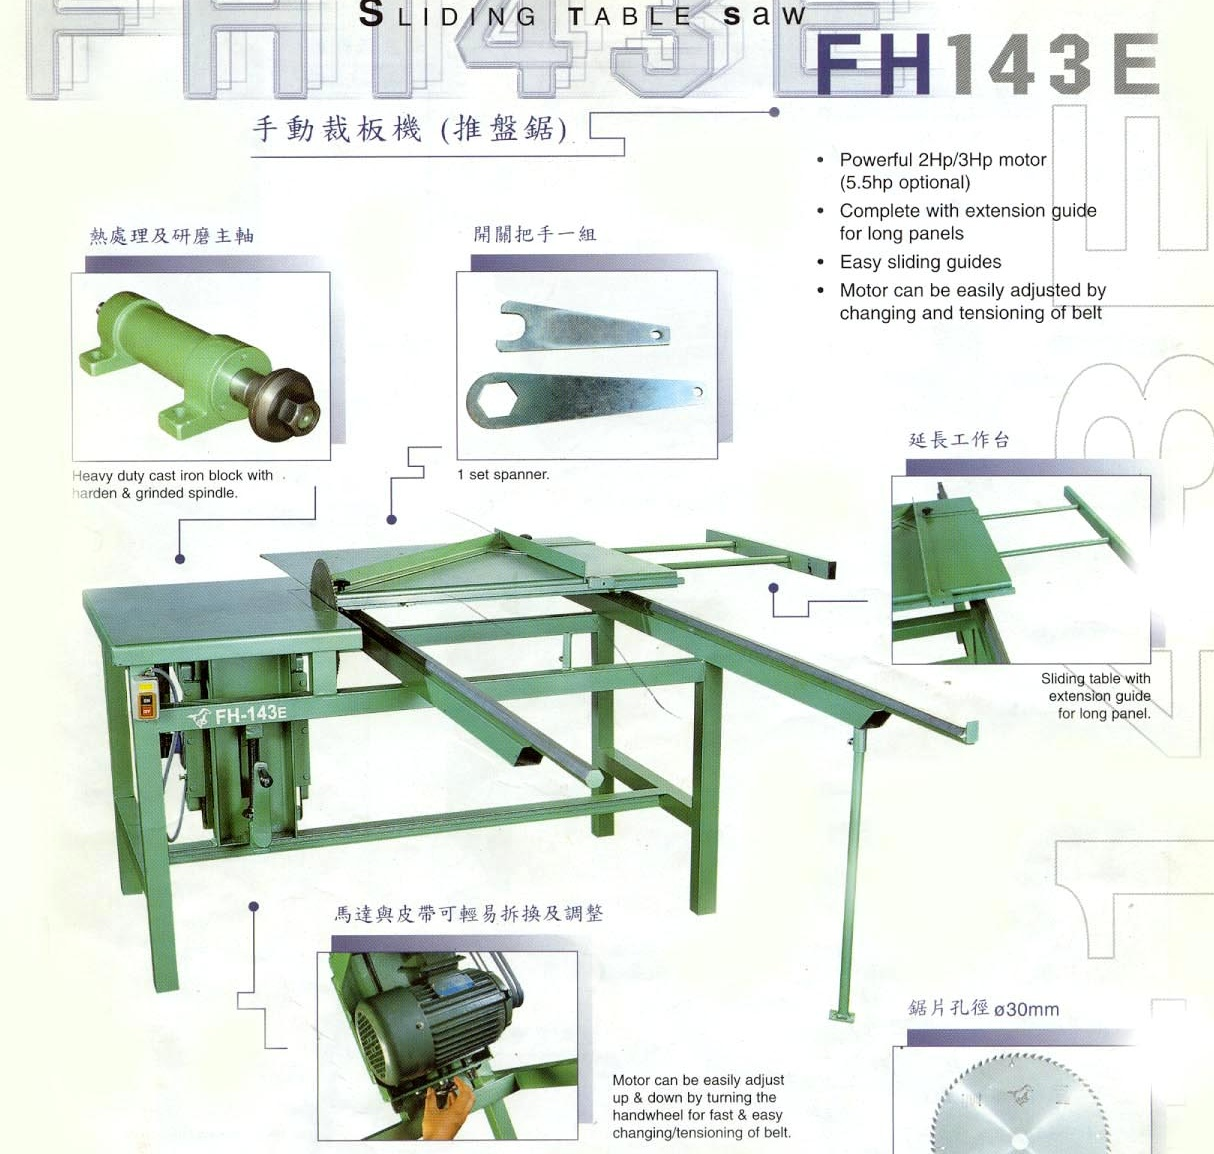 Table saw aiko 305mm sliding table saw 3 hp 3 phase aiko 305mm sliding table saw 3 hp 3 phase greentooth Images